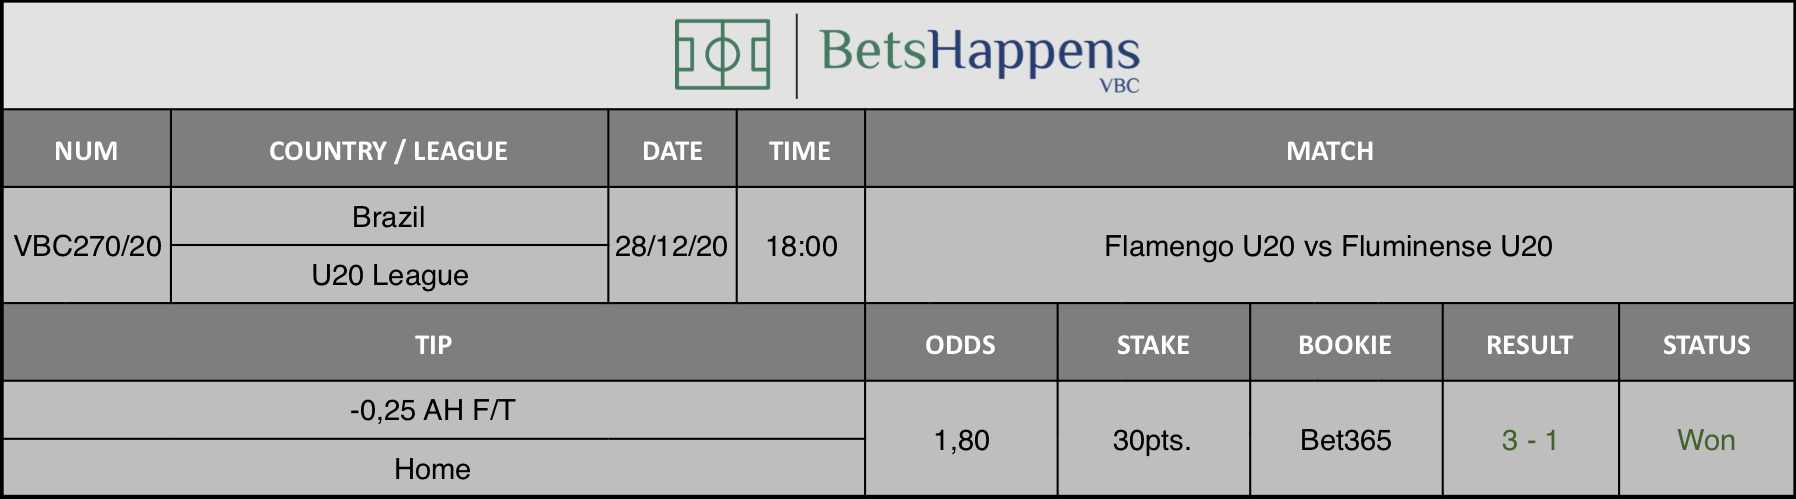 Results of our tip for the Flamengo U20 vs Fluminense U20 match where -0,25 AH F/T Home is recommended.